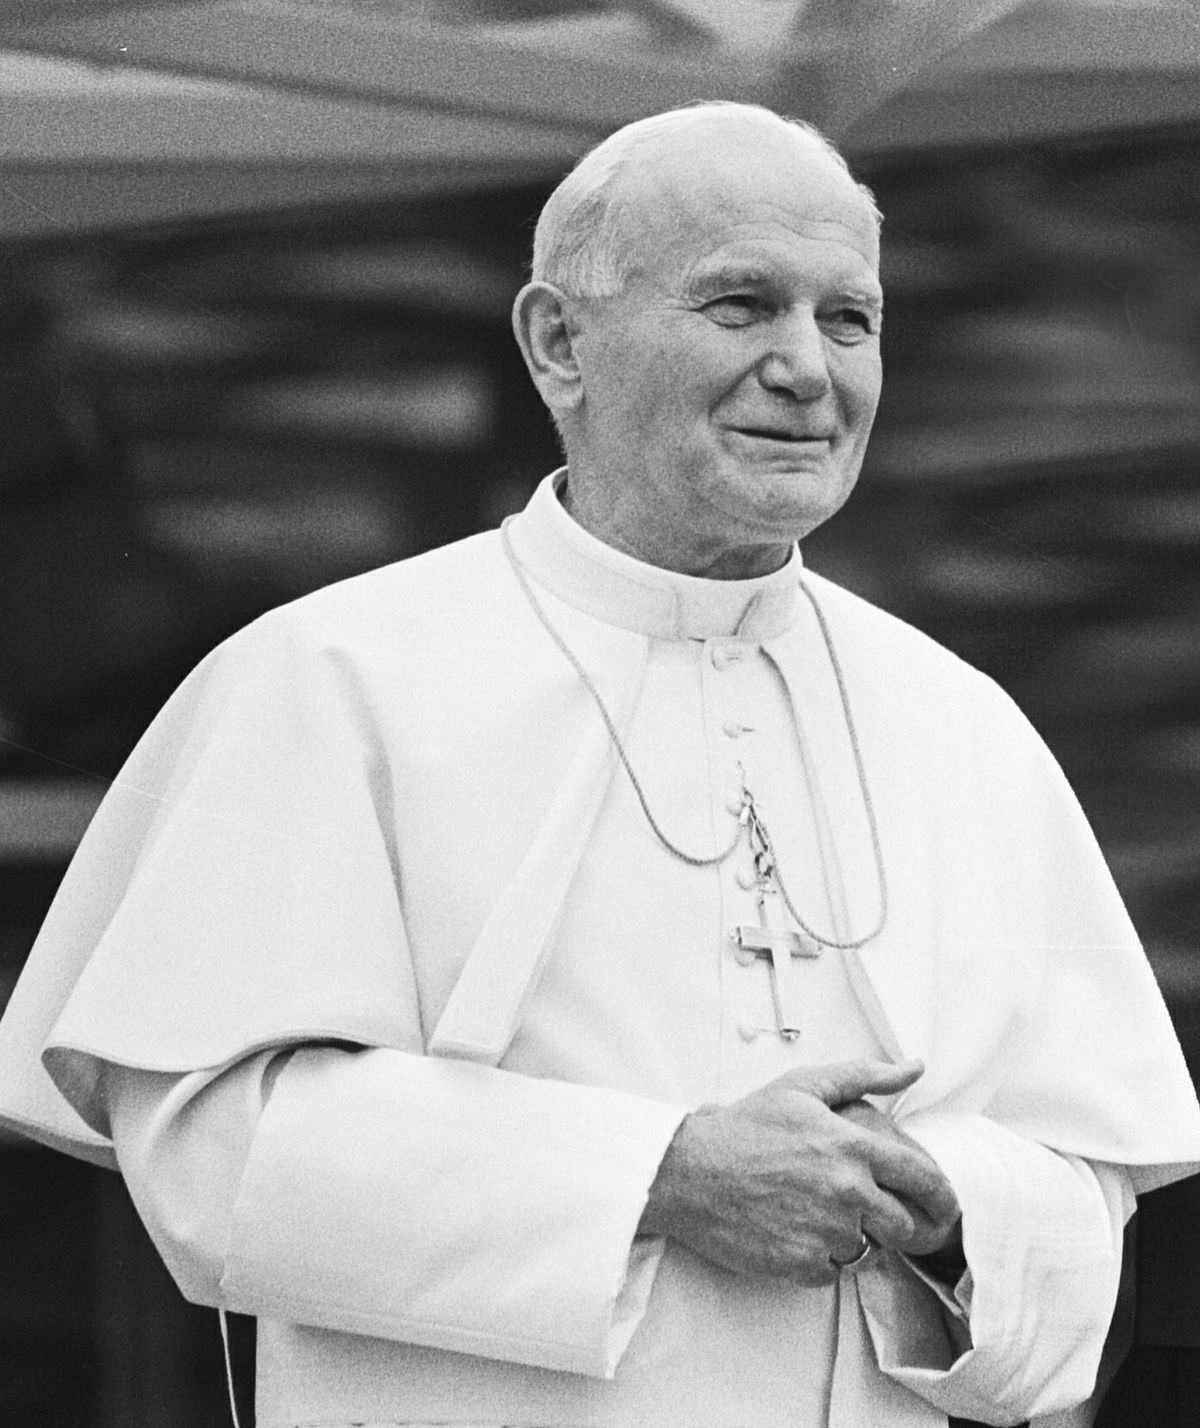 Pope John Paul II - Wikipedia